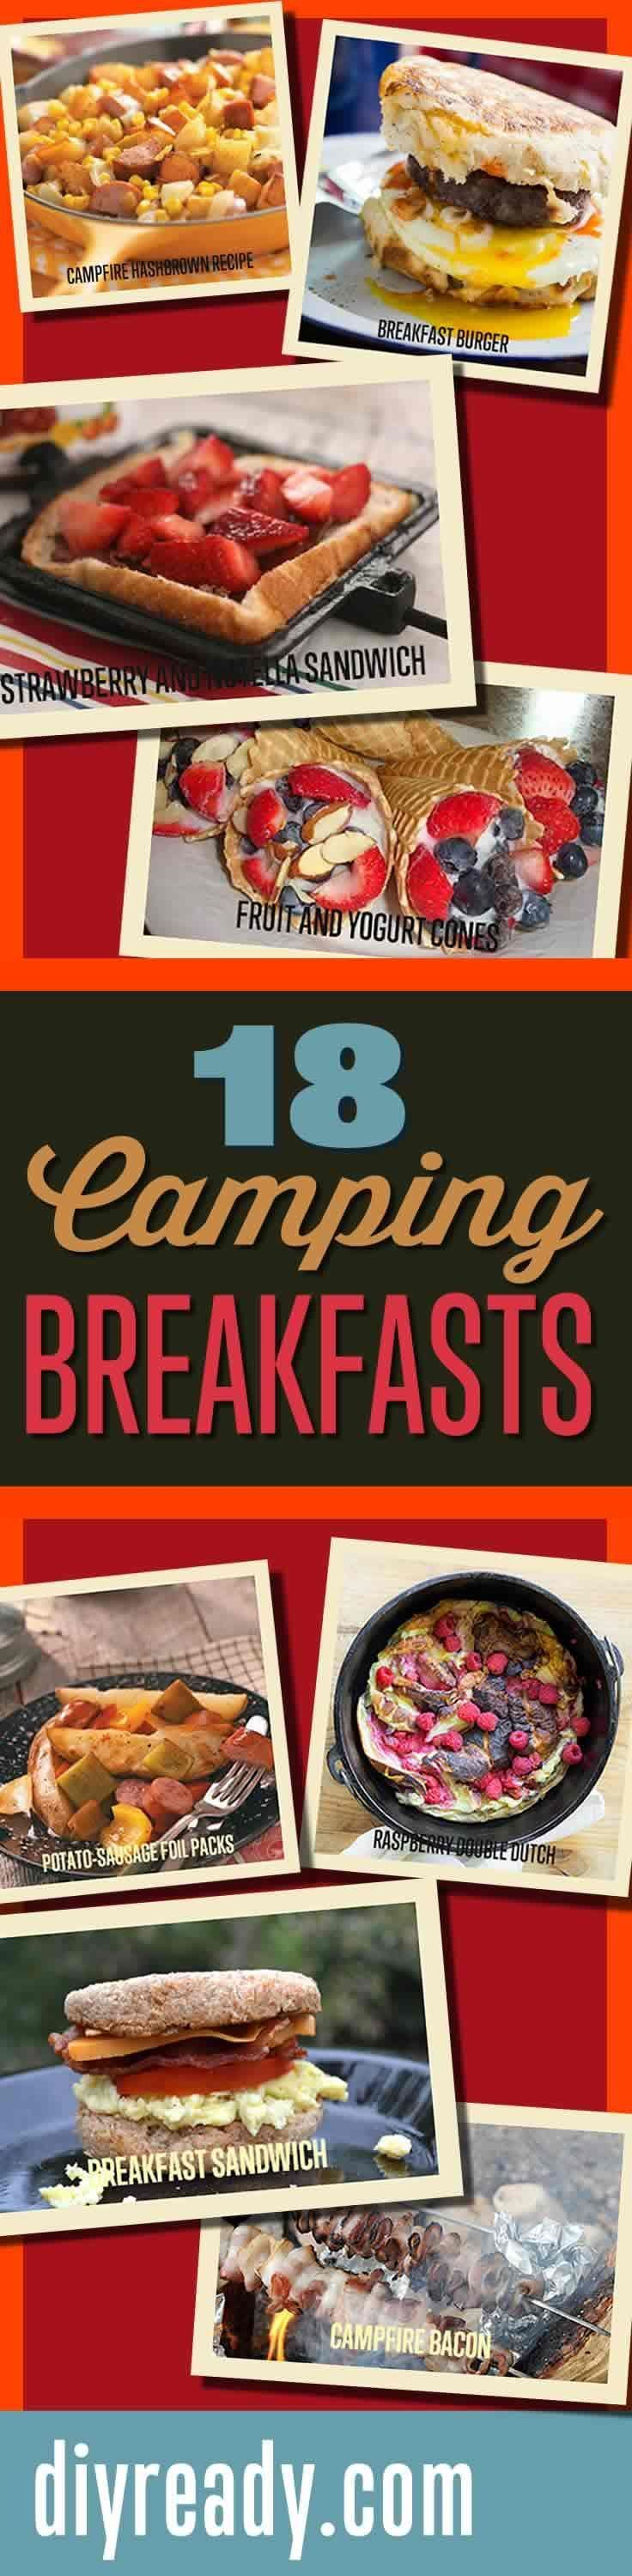 Mouthwatering Recipes You Must Try On Your Next Camping Trip | DIY Camping Breakfast Recipes and Easy Breakfast Ideas for Campfire Cooking  Tips http://diyready.com/18-mouthwatering-breakfast-recipes-to-try-on-your-next-camping-trip/